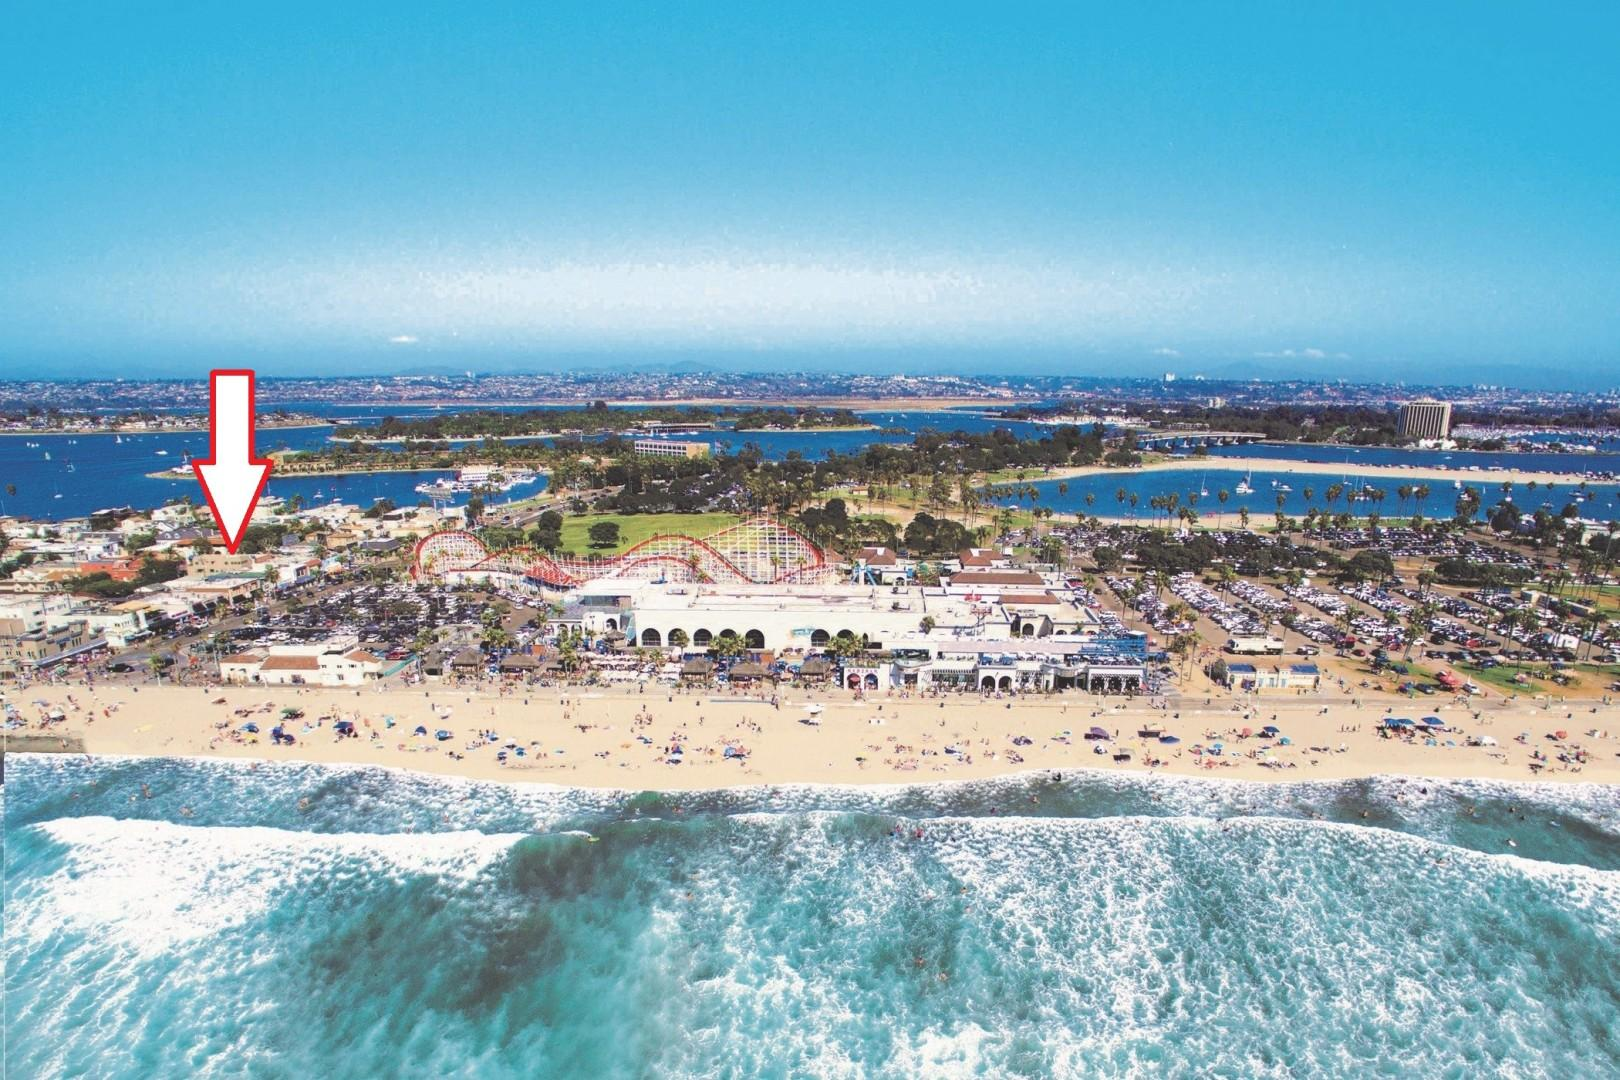 Located in the heart of Mission Beach